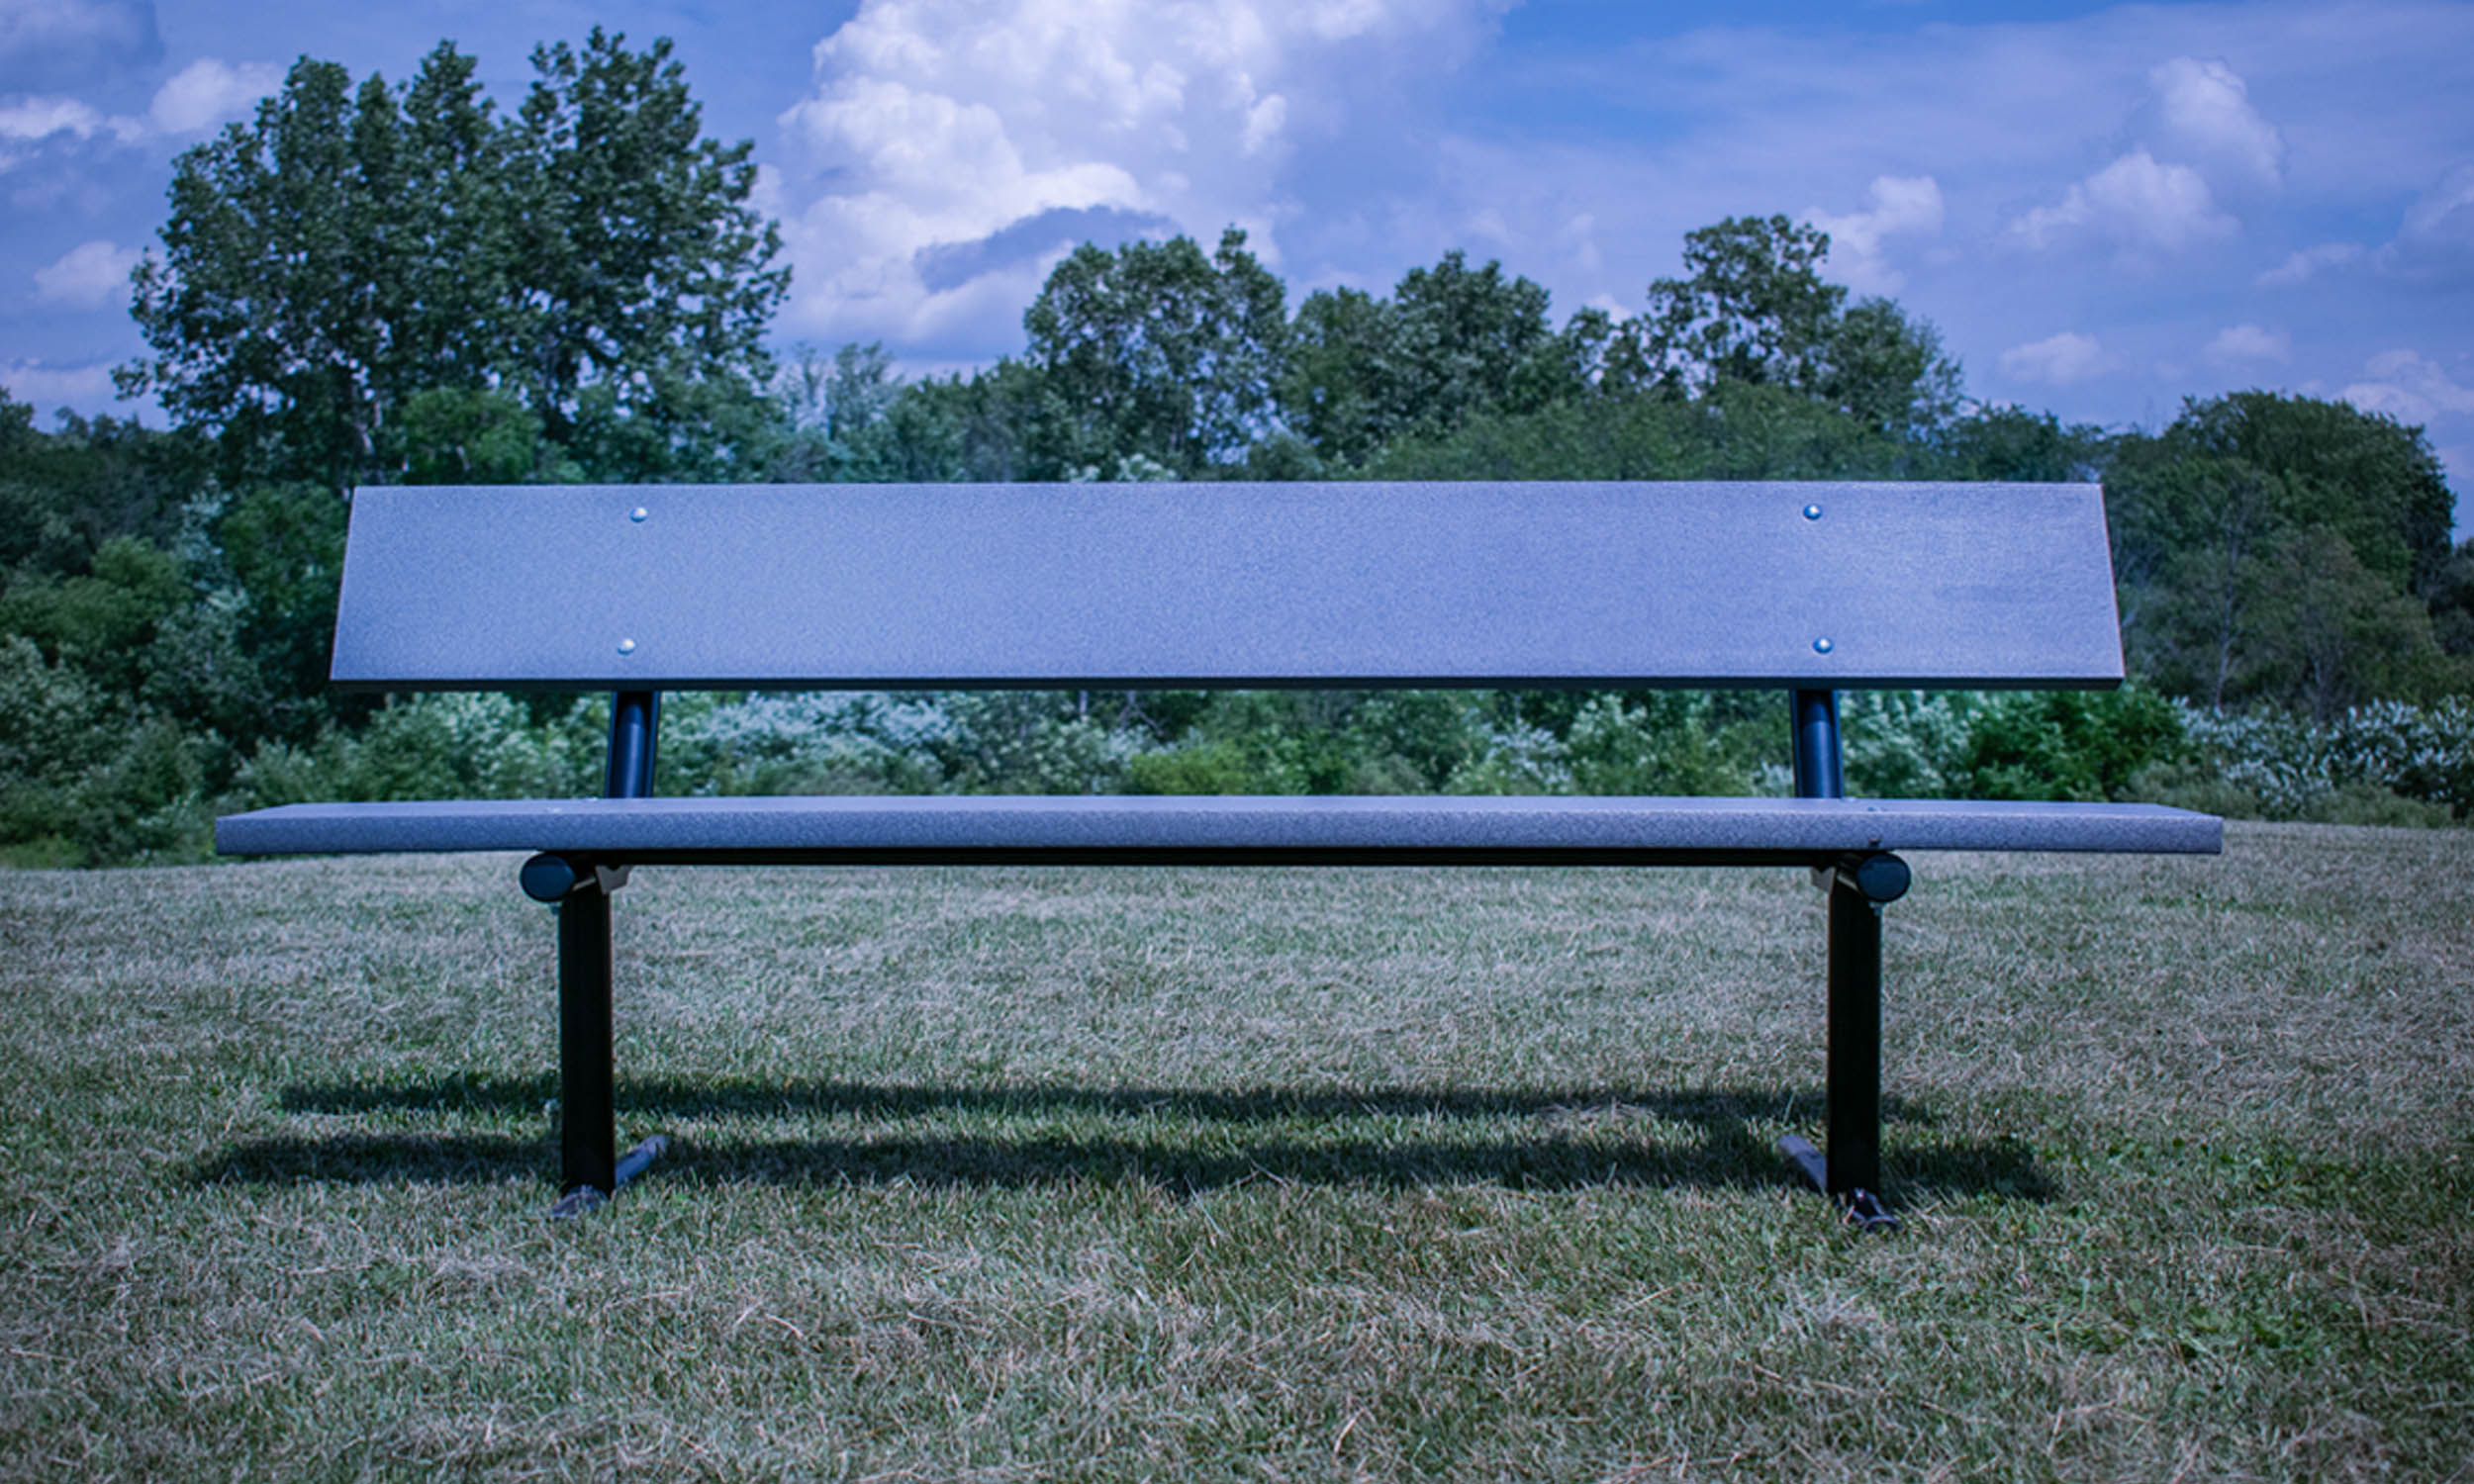 Picture of: Advantage Outdoor Products Site Furnishings More 6 Recycled Plastic Bench Leisure Park Bench